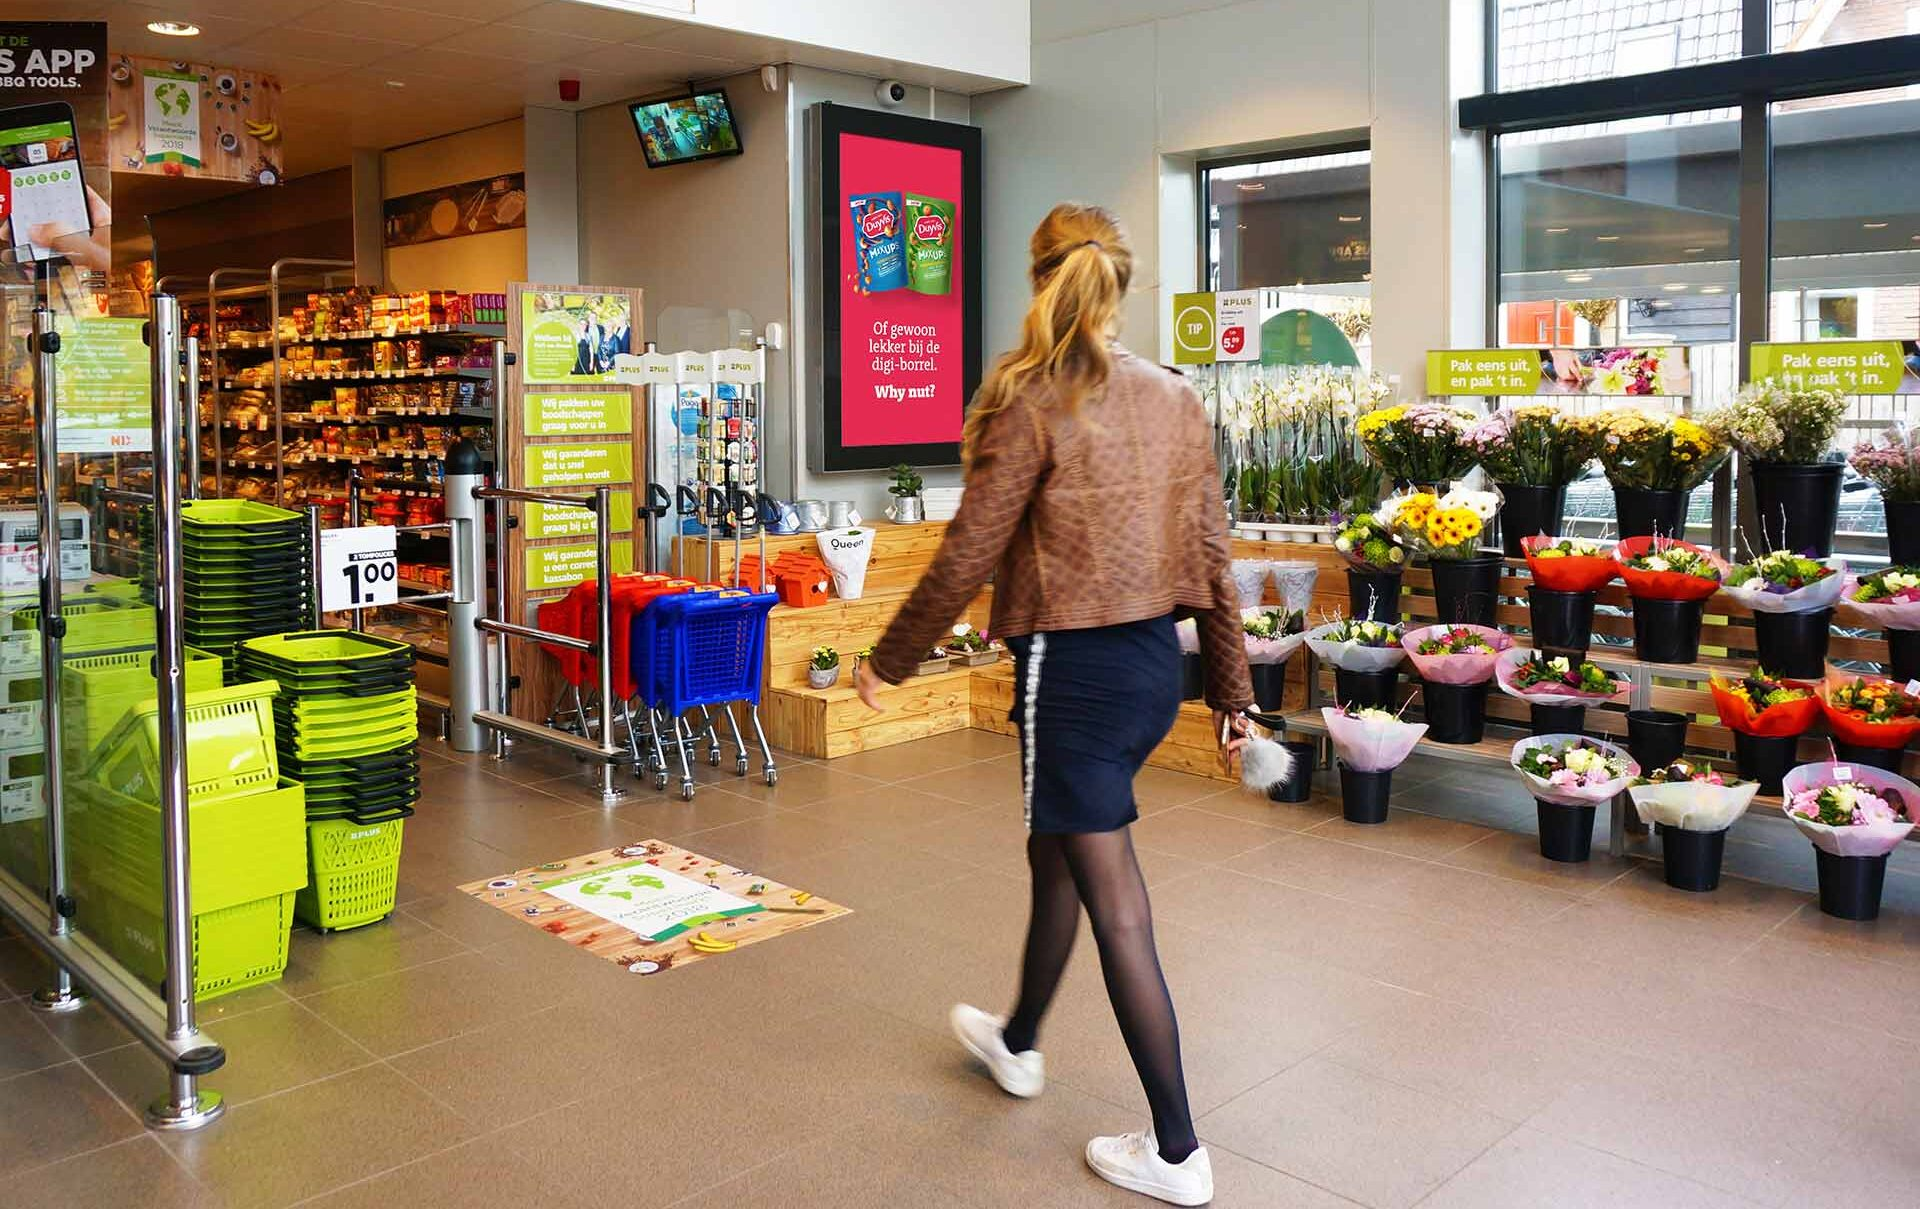 Adverteren in de supermarkt PLUS